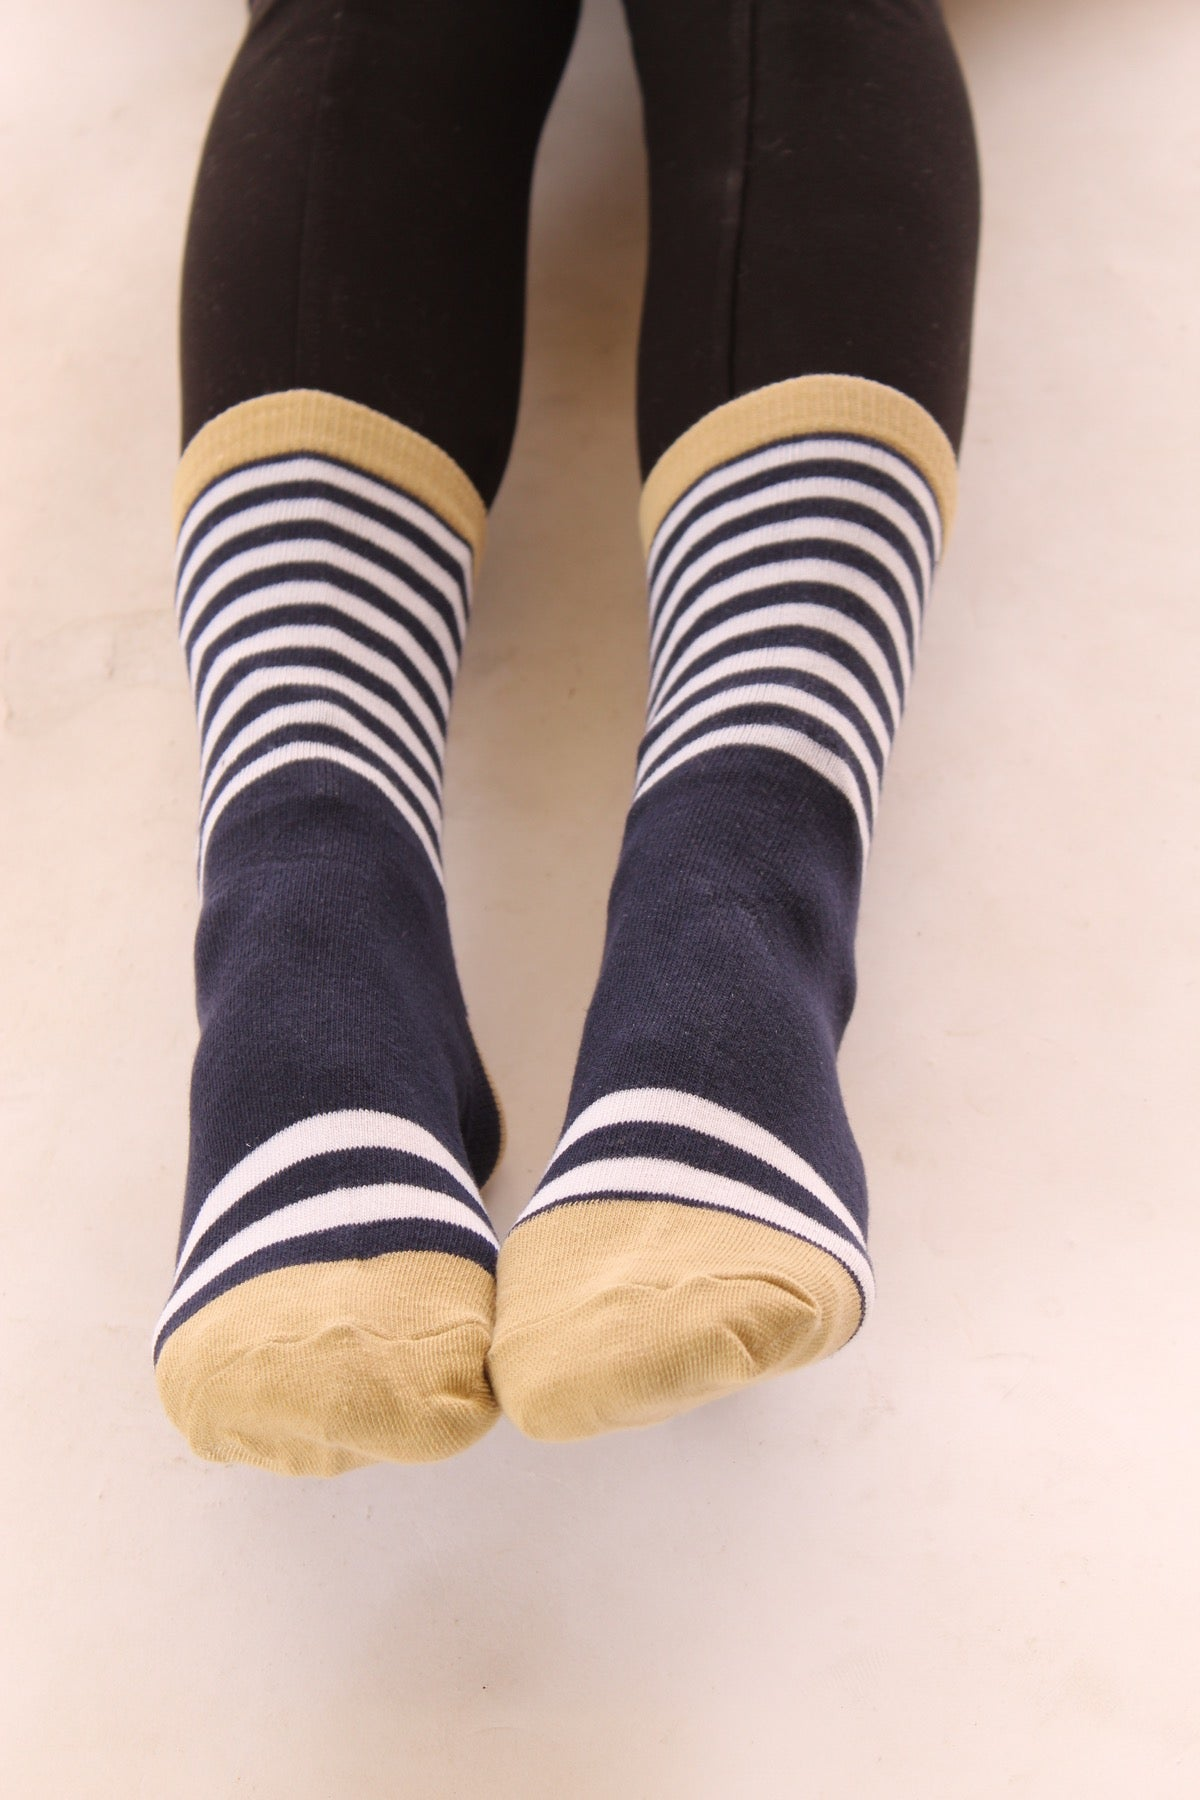 Bring Me Coffee Socks in Blue/White/Tan